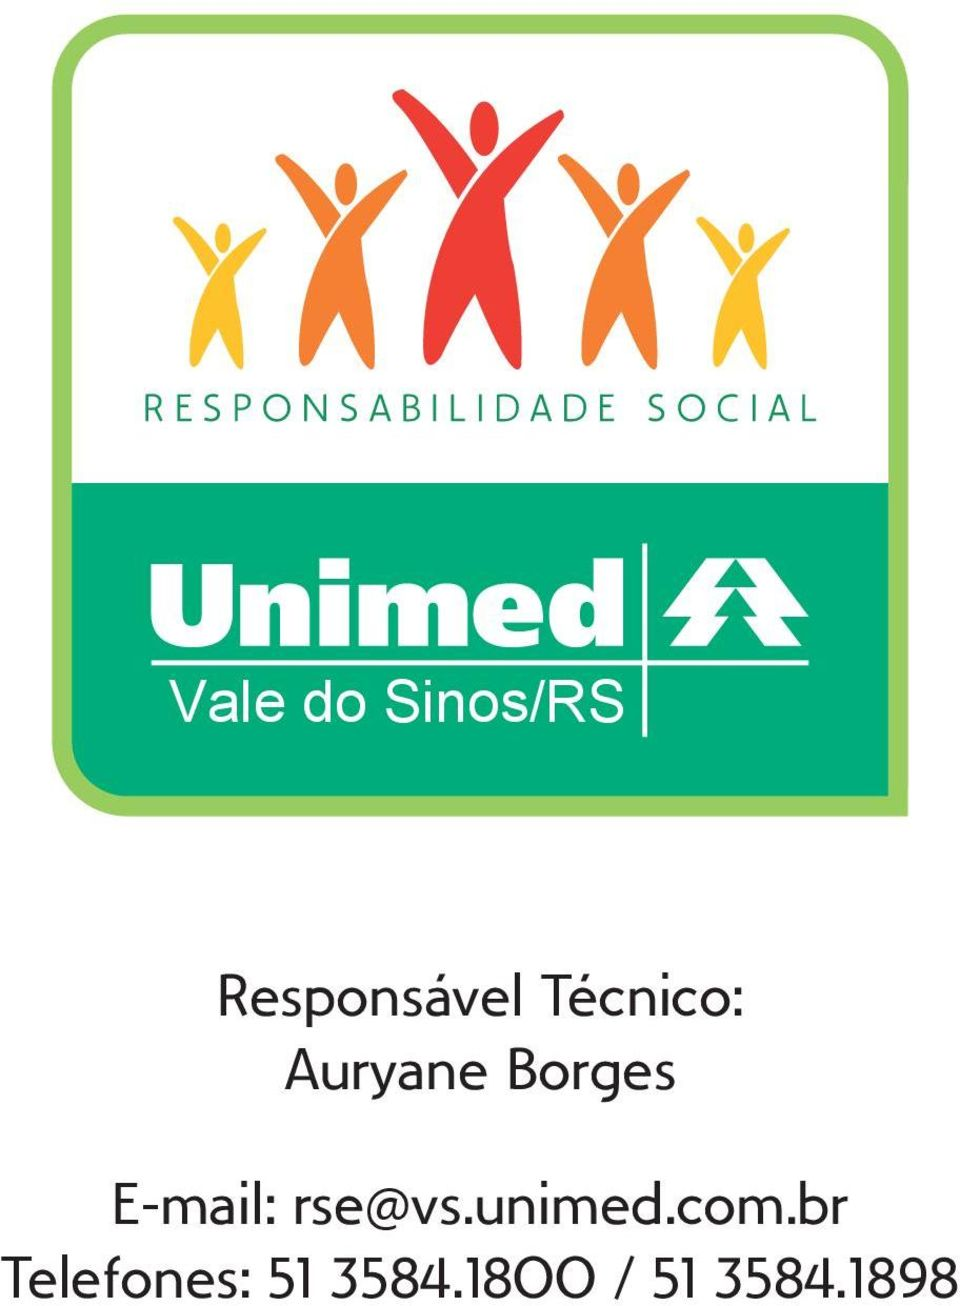 rse@vs.unimed.com.